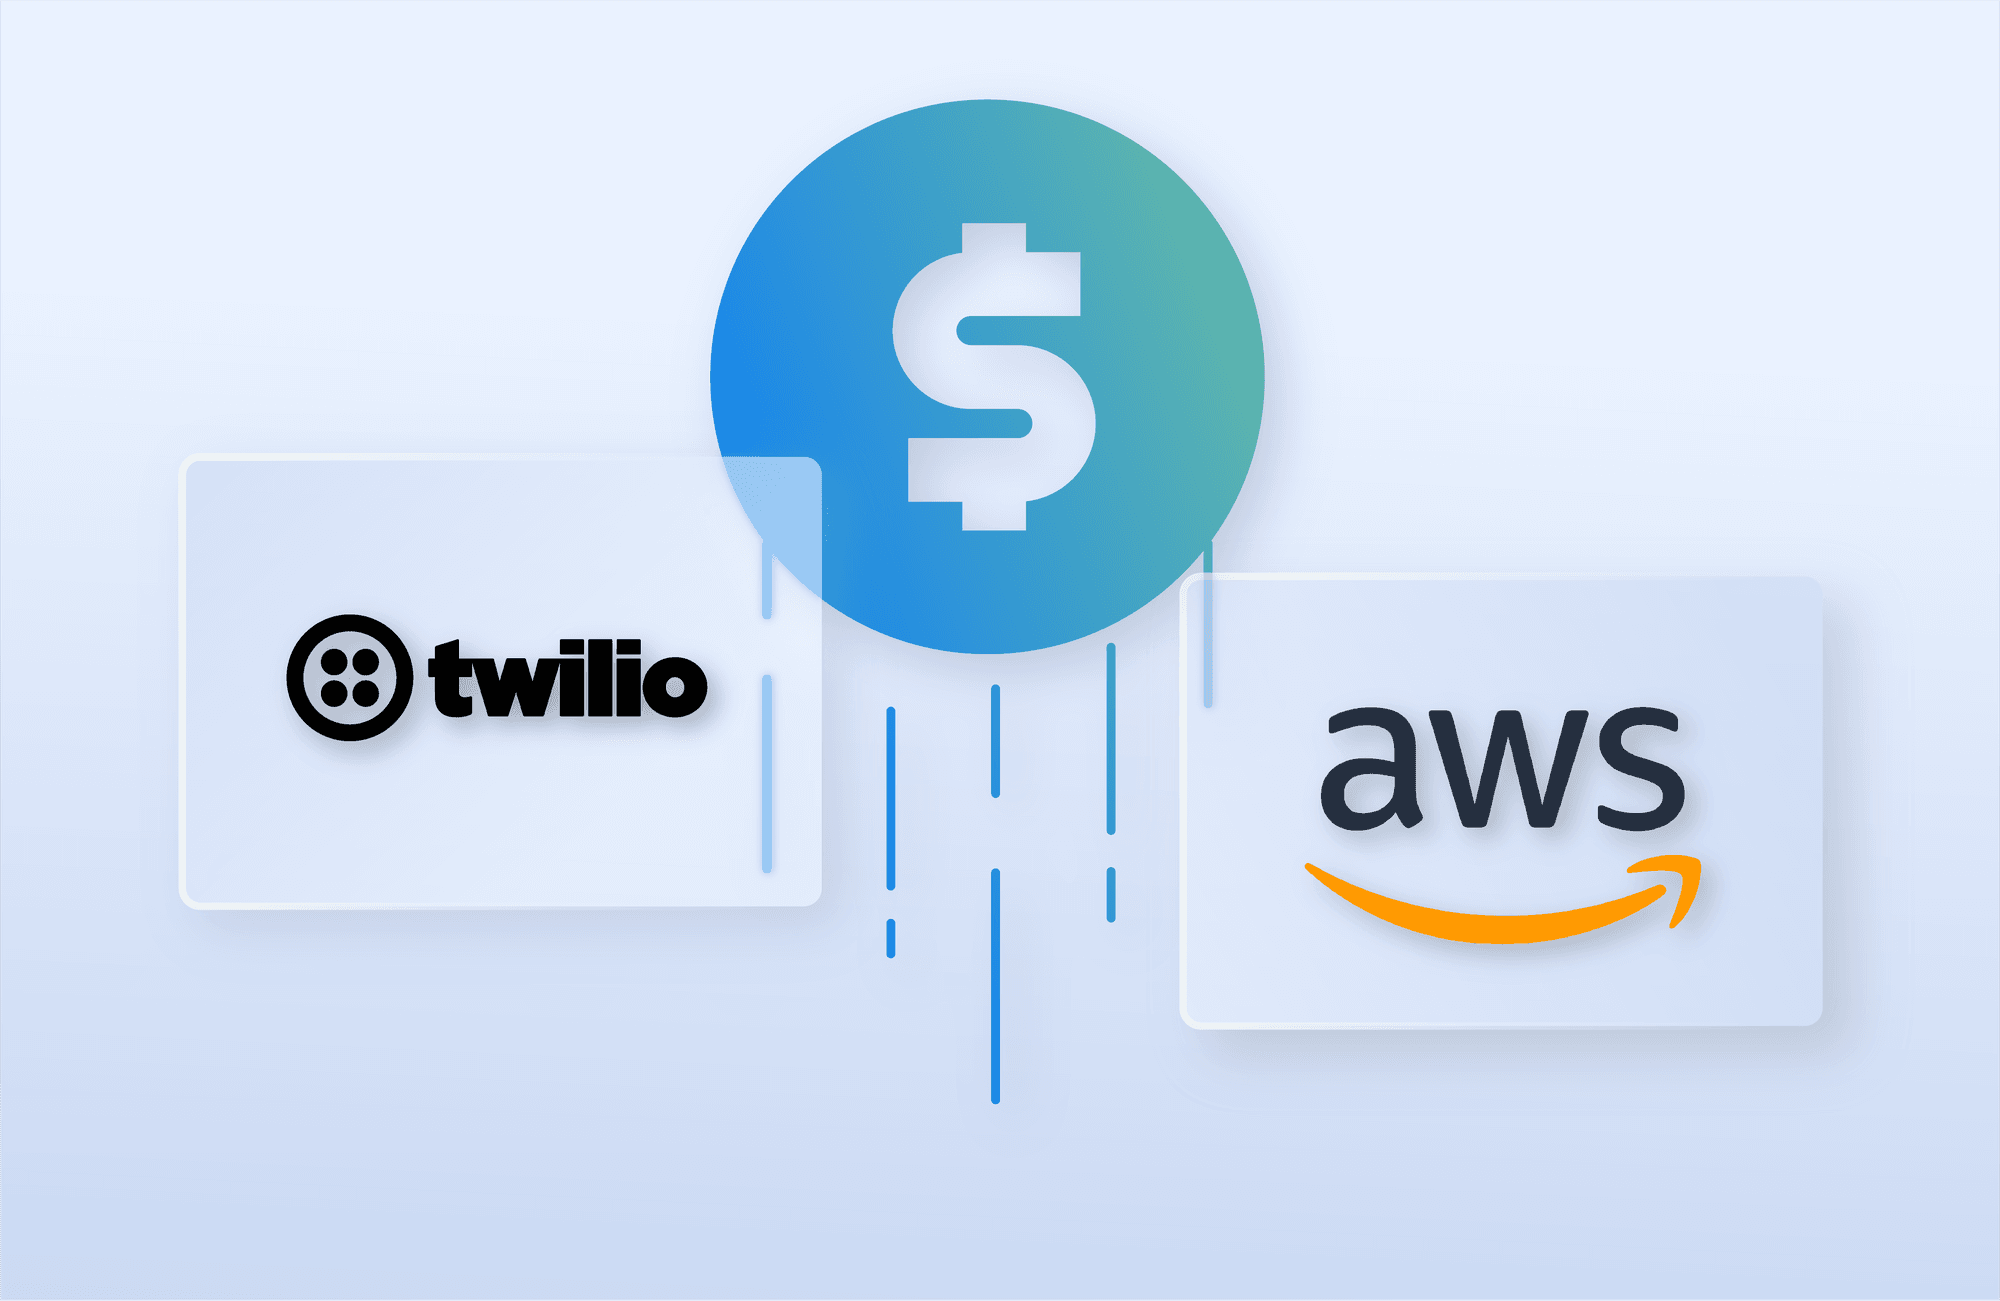 Create Pricing Models Like AWS and Twilio with Events-Based Billing